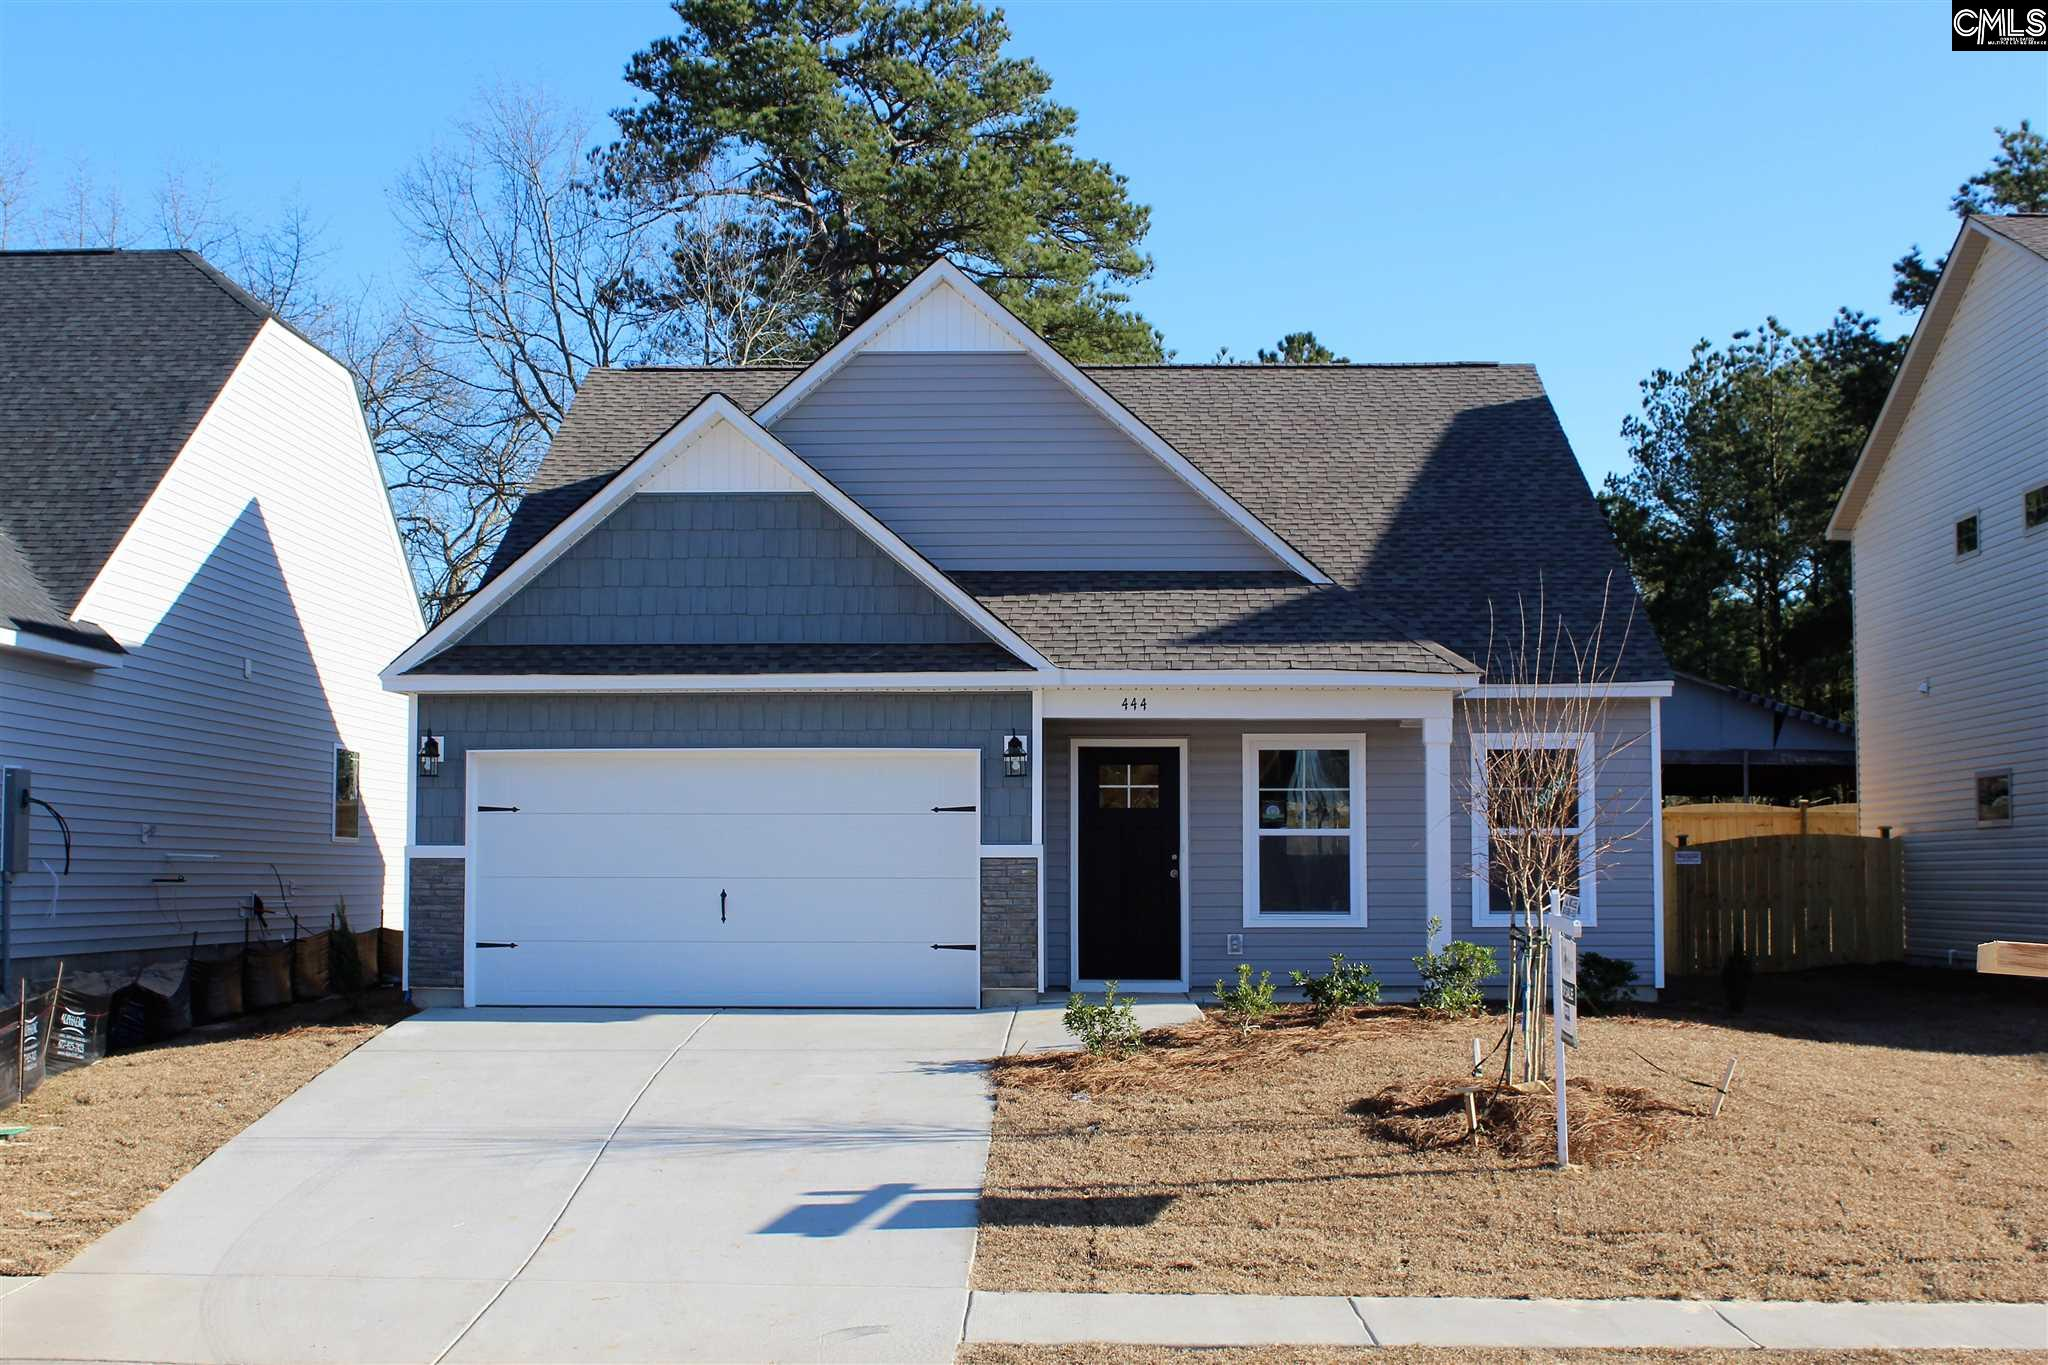 444 Fairford Blythewood, SC 29016